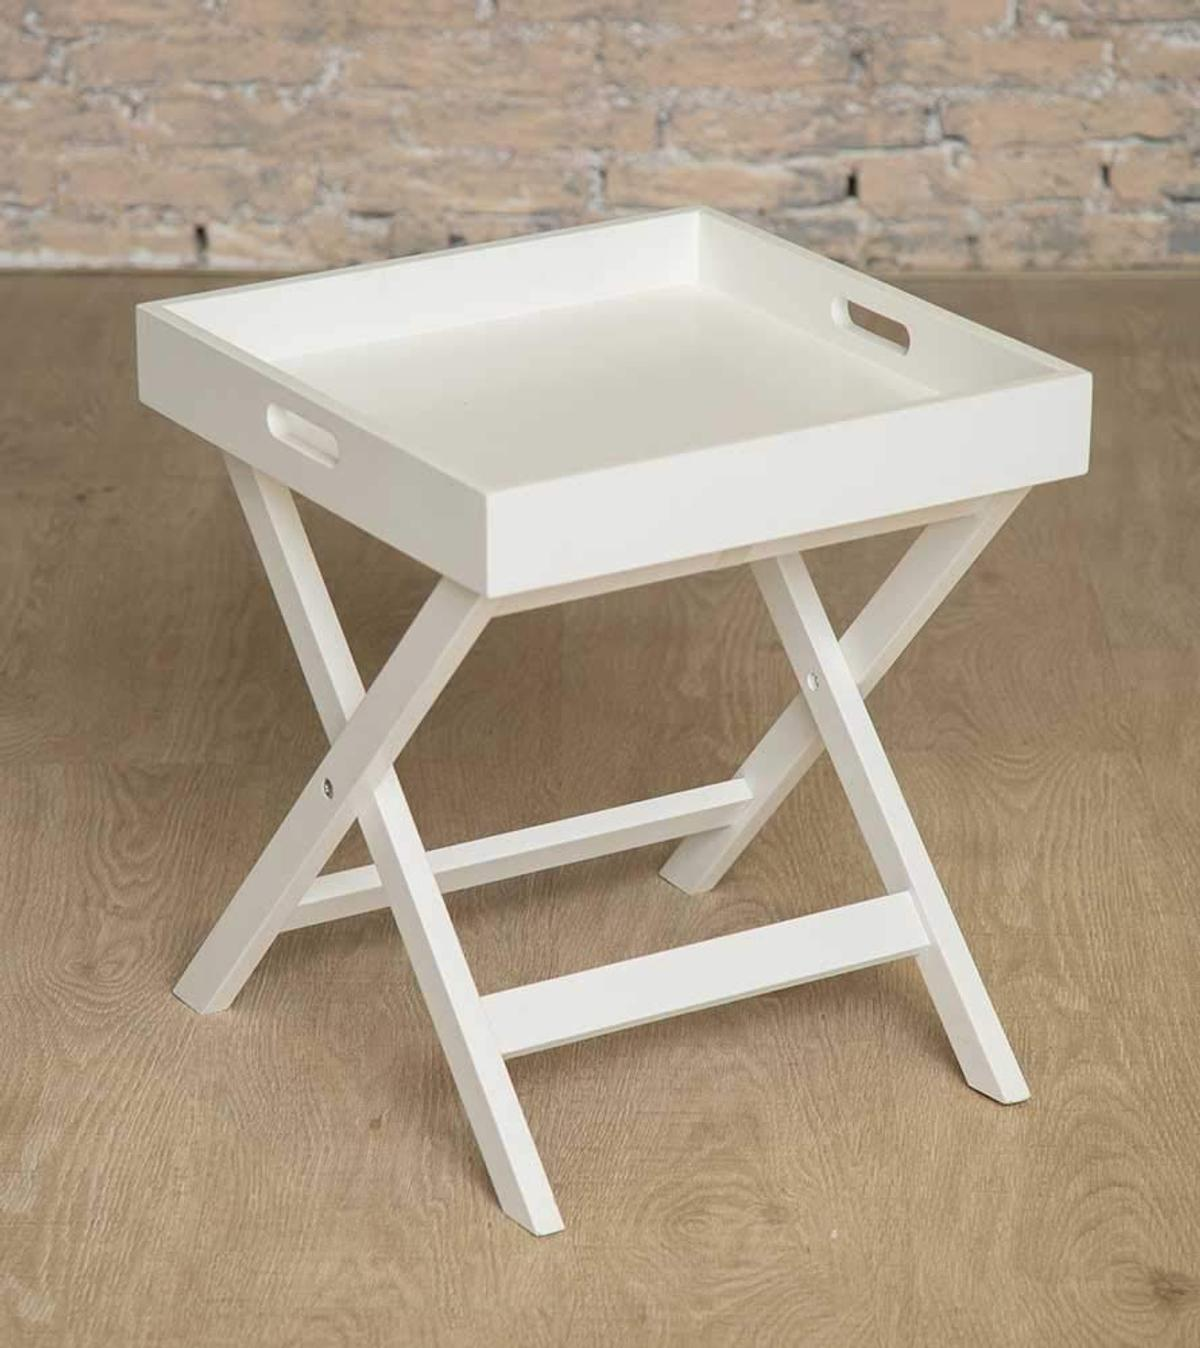 - Sue Ryder Butlers Wooden Console Tray Table In E14 Hamlets Für 5